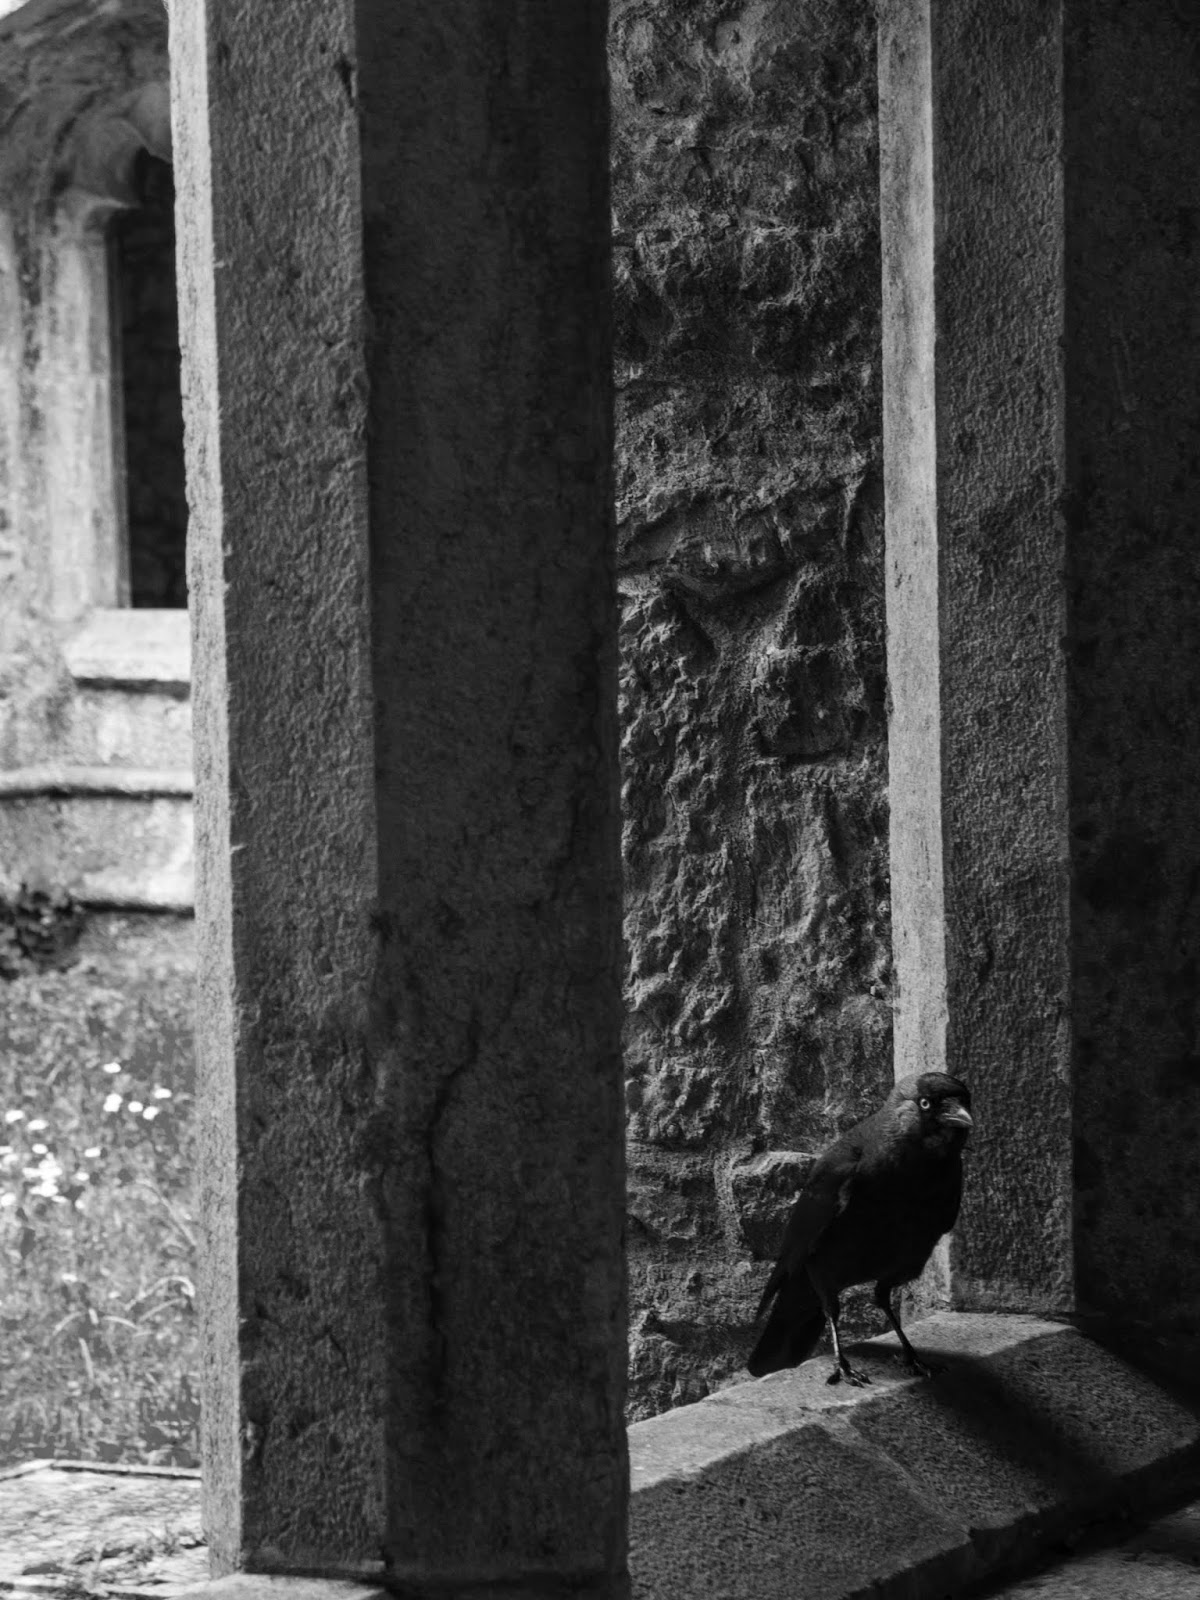 A curious crow sitting on a window looking out into a cloister square in a friary in Adare, Co.Limerick.